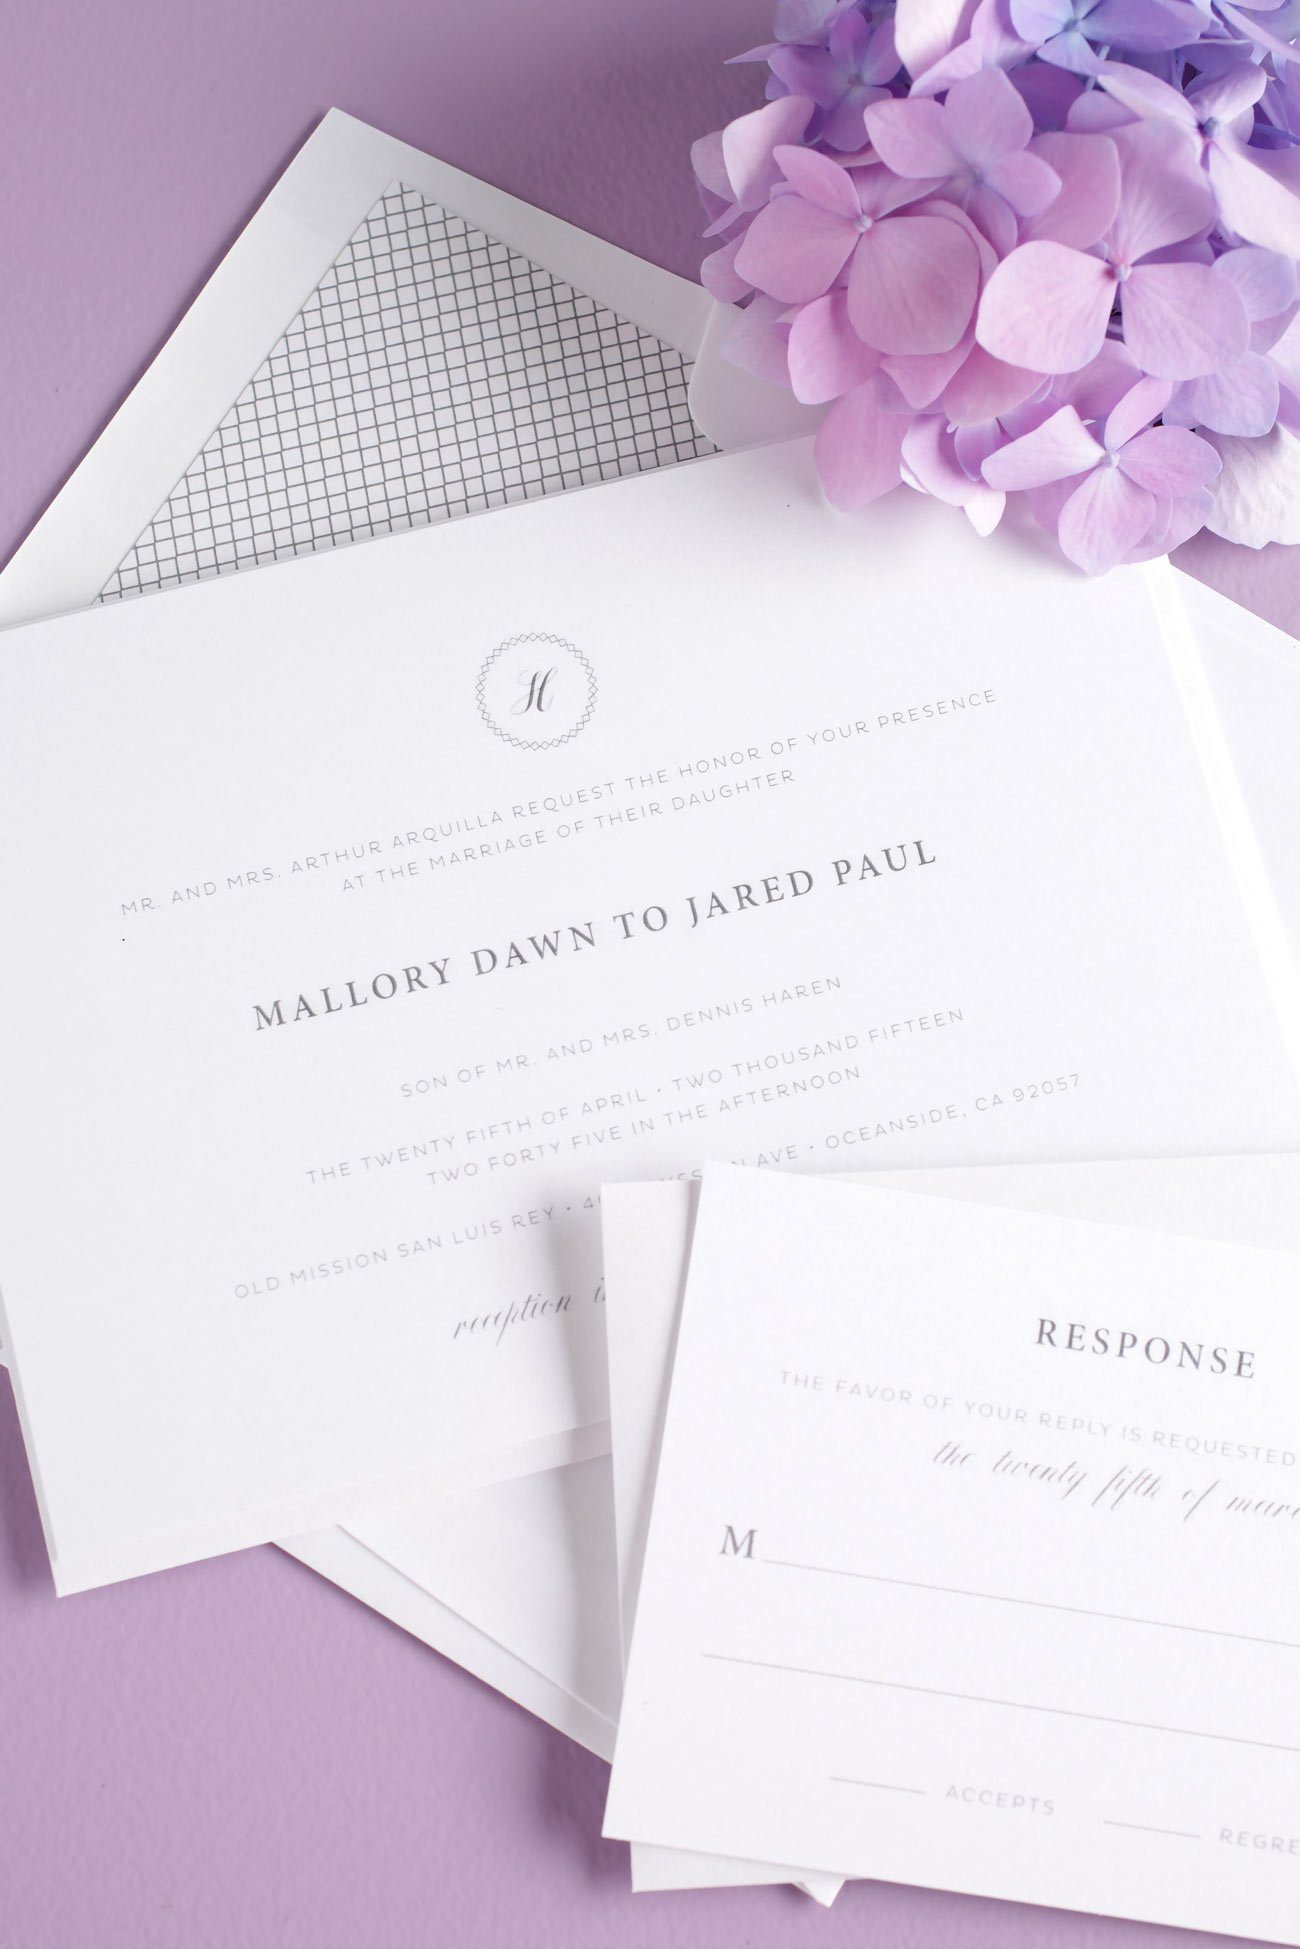 Vintage and Elegant Gray wedding invitations with purple accents